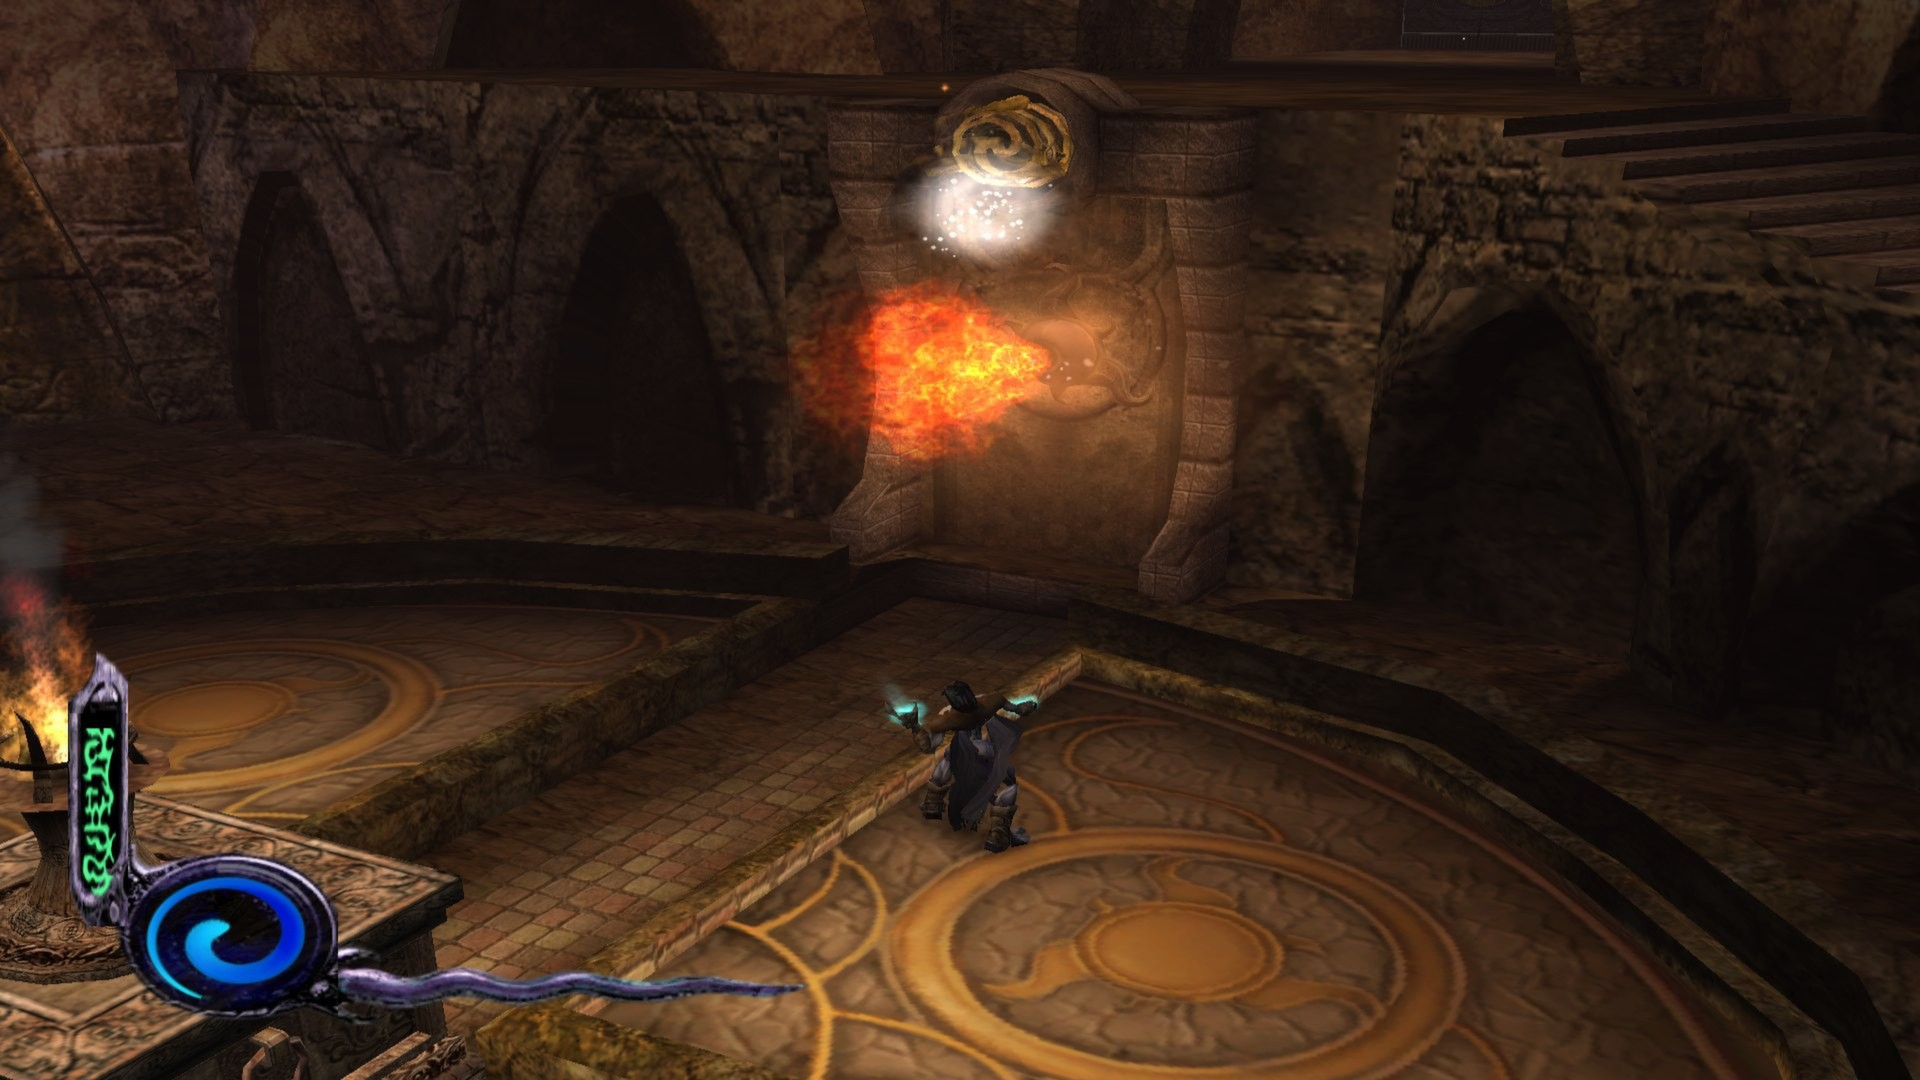 Legacy of Kain: Defiance screenshot 1